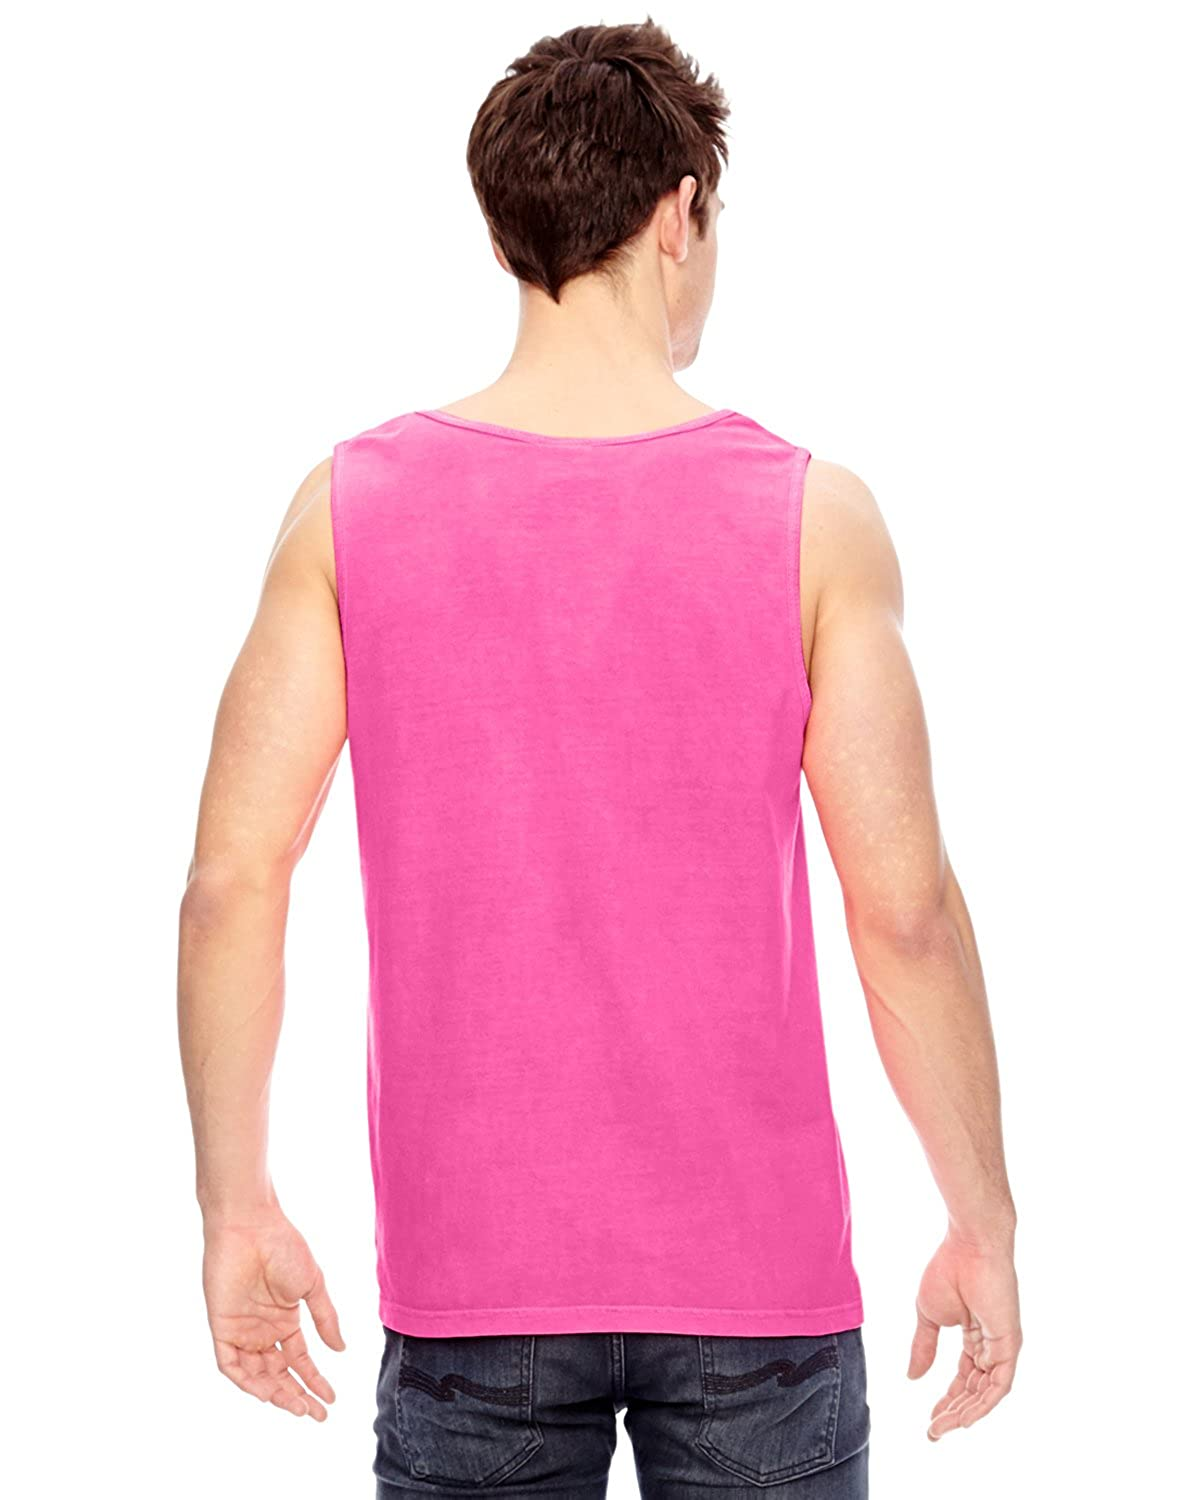 Comfort Colors Pigment Dyed Tank Top 9360-Neon Pink